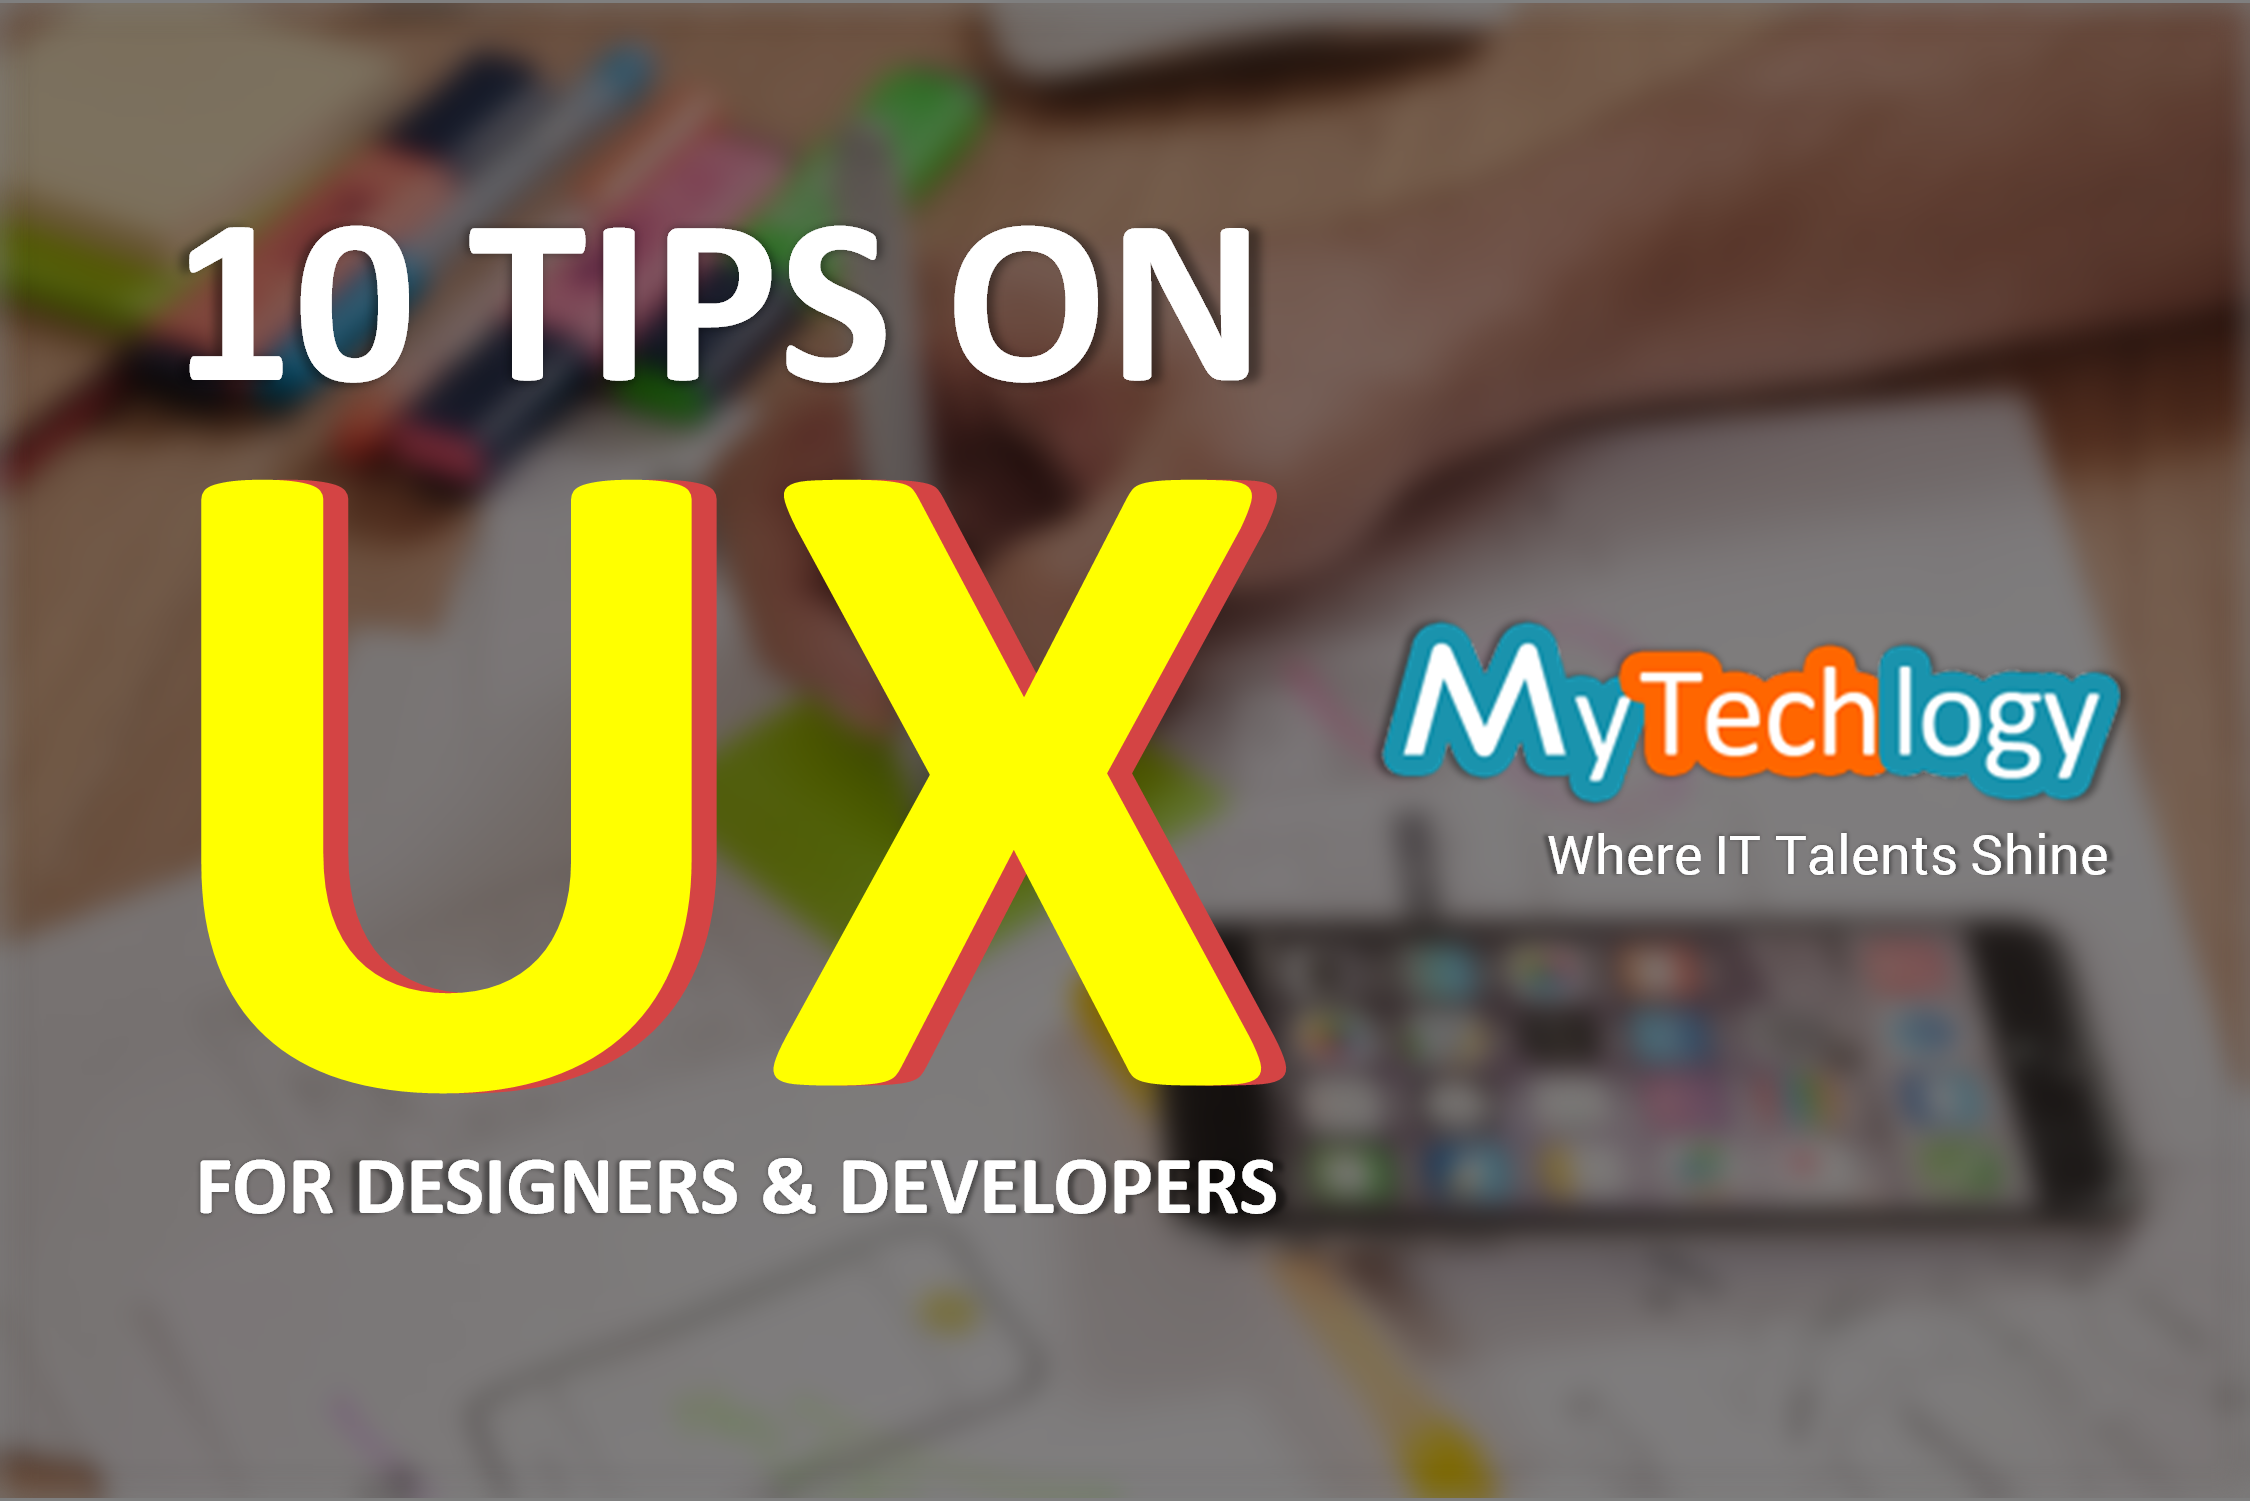 10 User Experience (UX) Tips for your website - Image 1